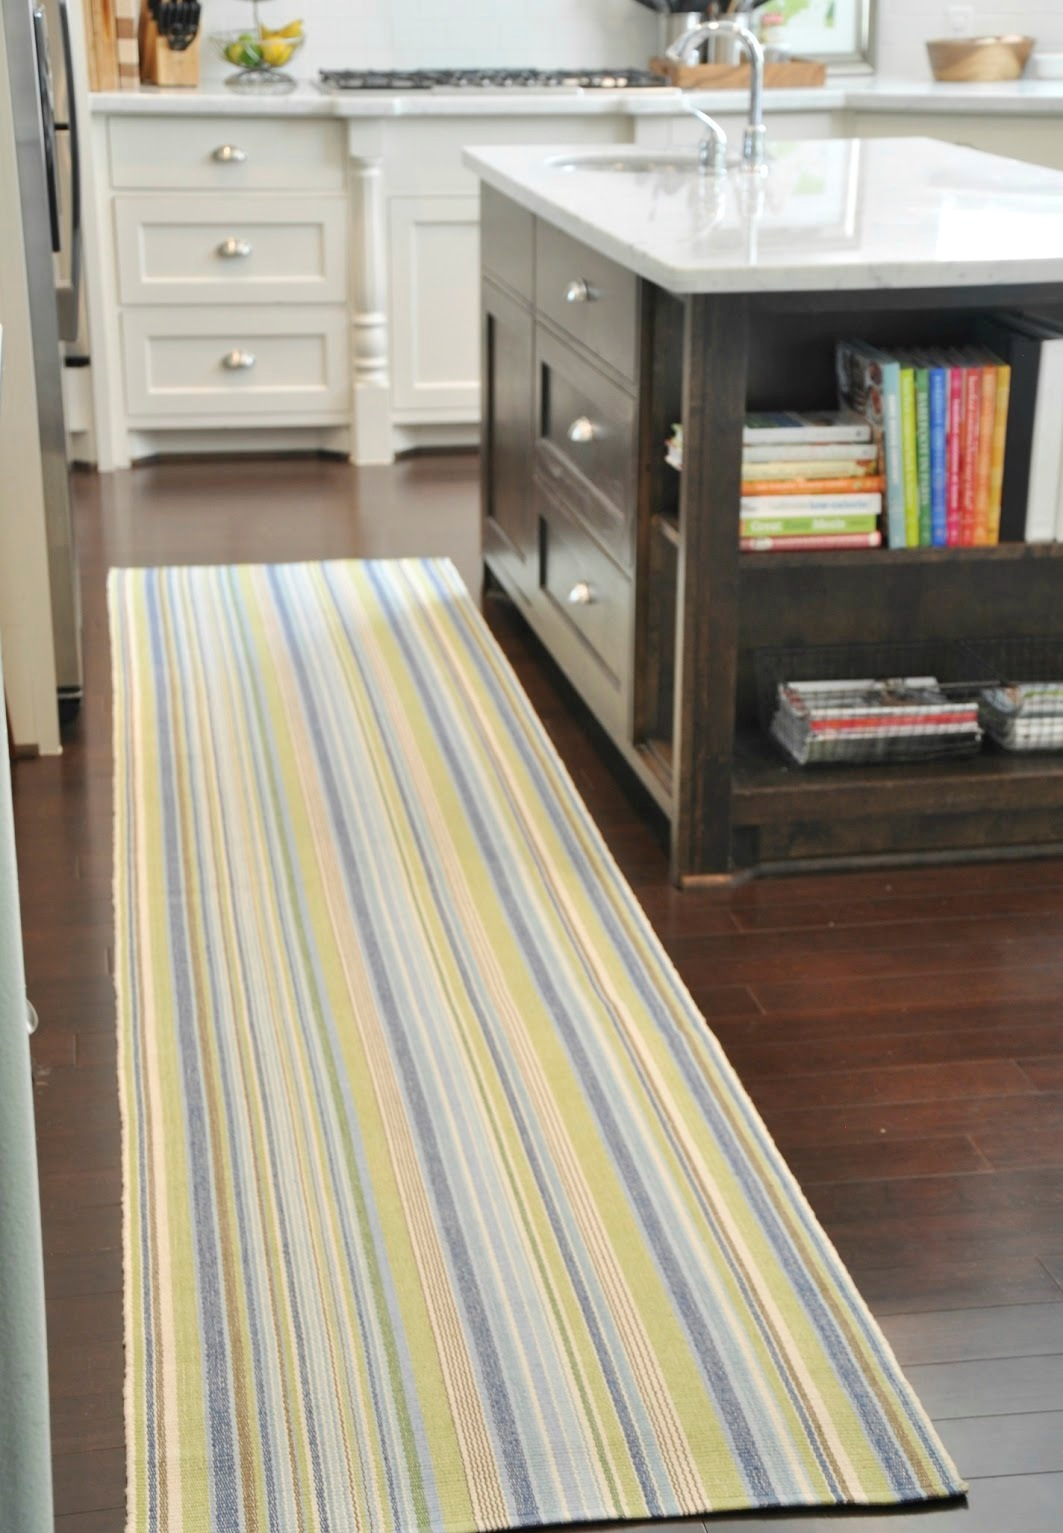 light rug and kitchen l mats grey mat gray solid area white dark rugs striped yellow